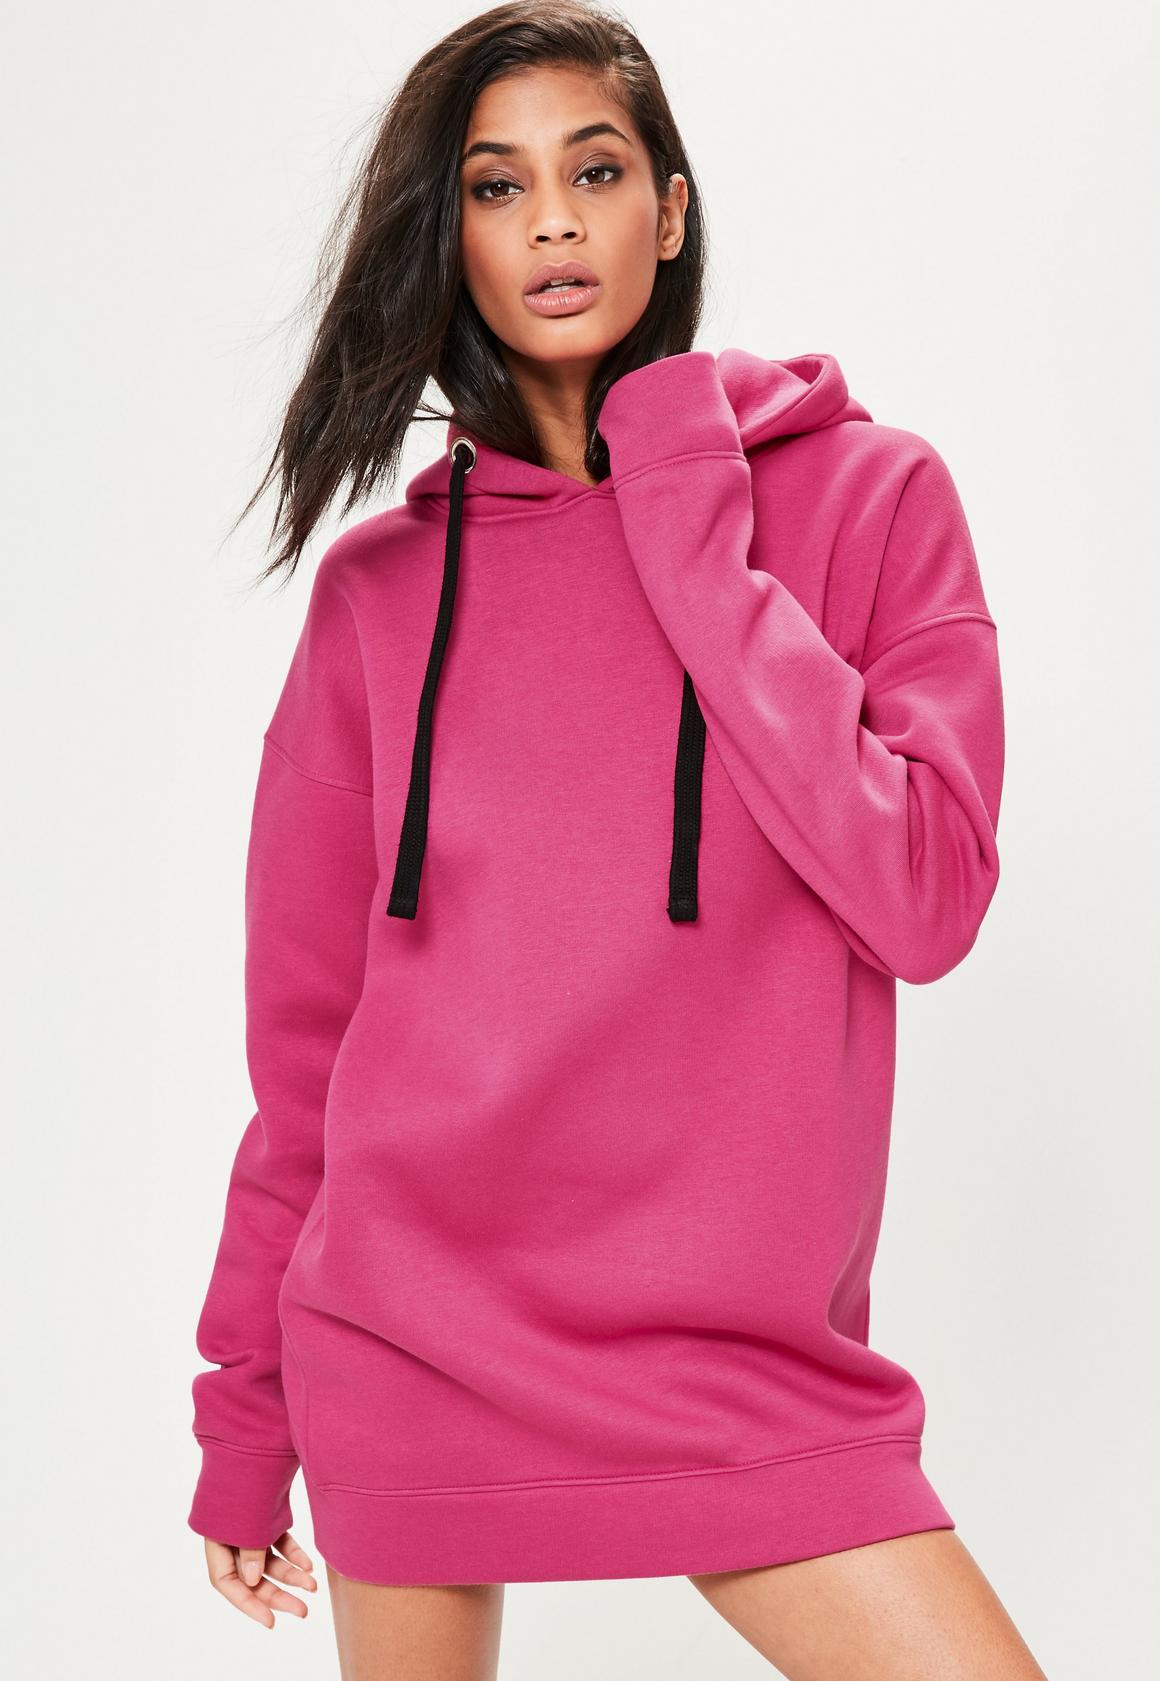 Pink Eyelet Fleeceback Hooded Sweater Dress | Missguided